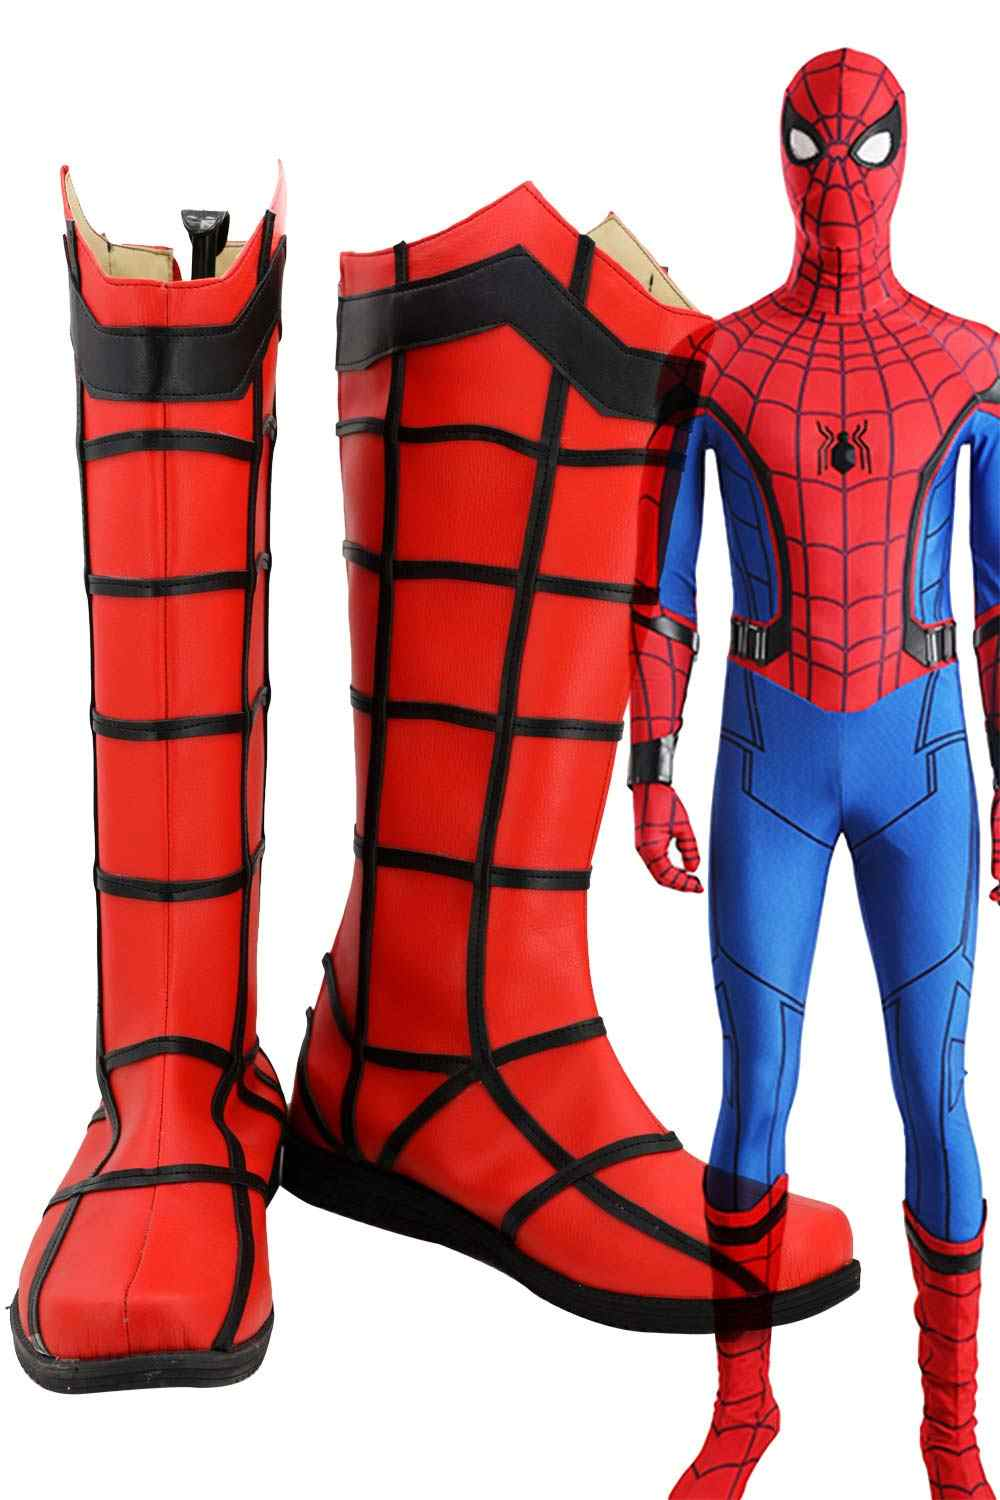 Spiderman bottes chaussures Cosplay super-héros spider-man retour Cosplay Costume Spider-Man chaussures pour adultes hommes taille européenne